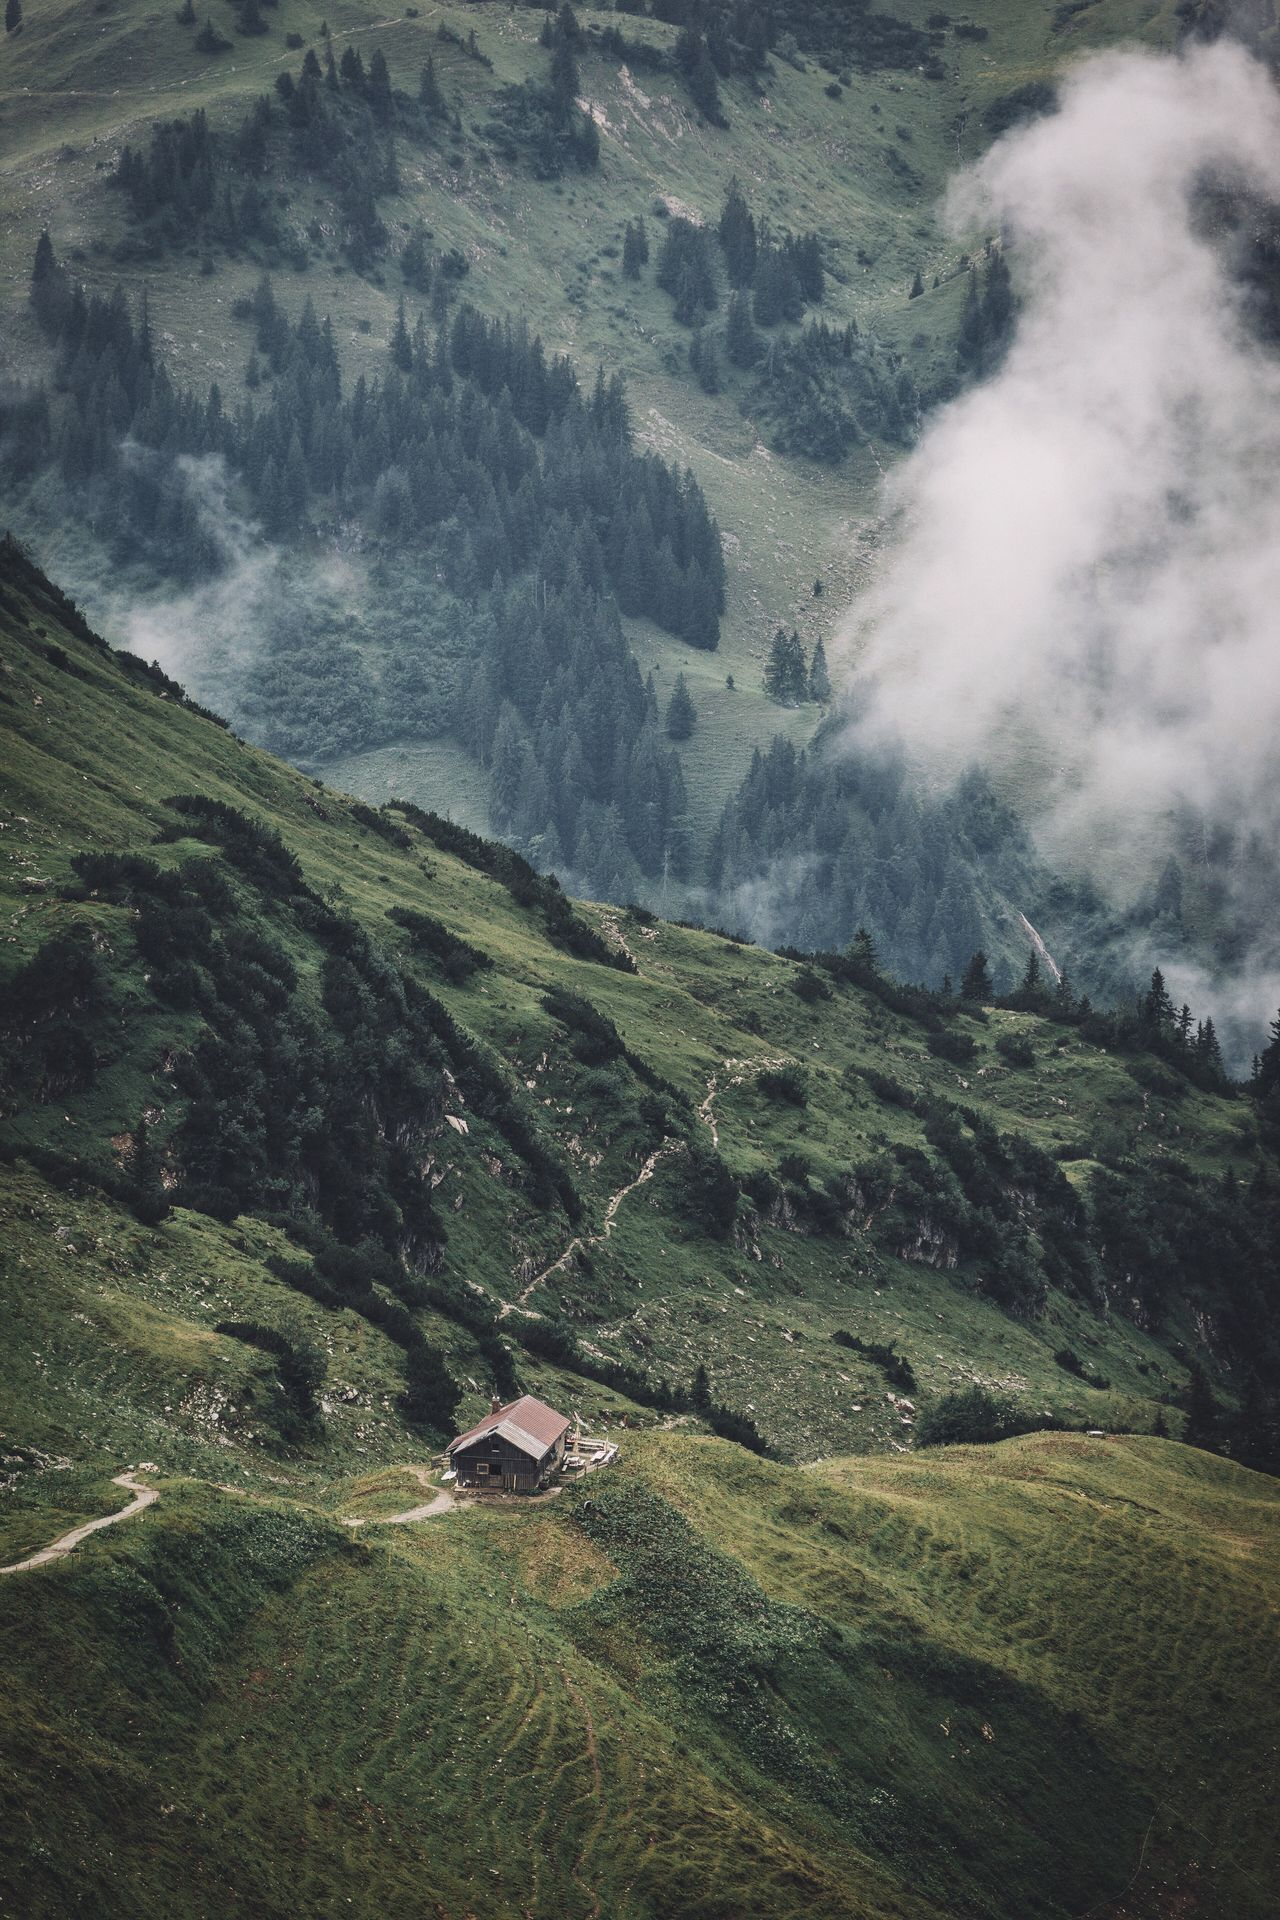 Liking in the mountains Bavaria Germany Travel Vscofilm Mountain Nature Tranquility Landscape Tranquil Scene Beauty In Nature Green Color Scenics Grass No People Outdoors Day Slope